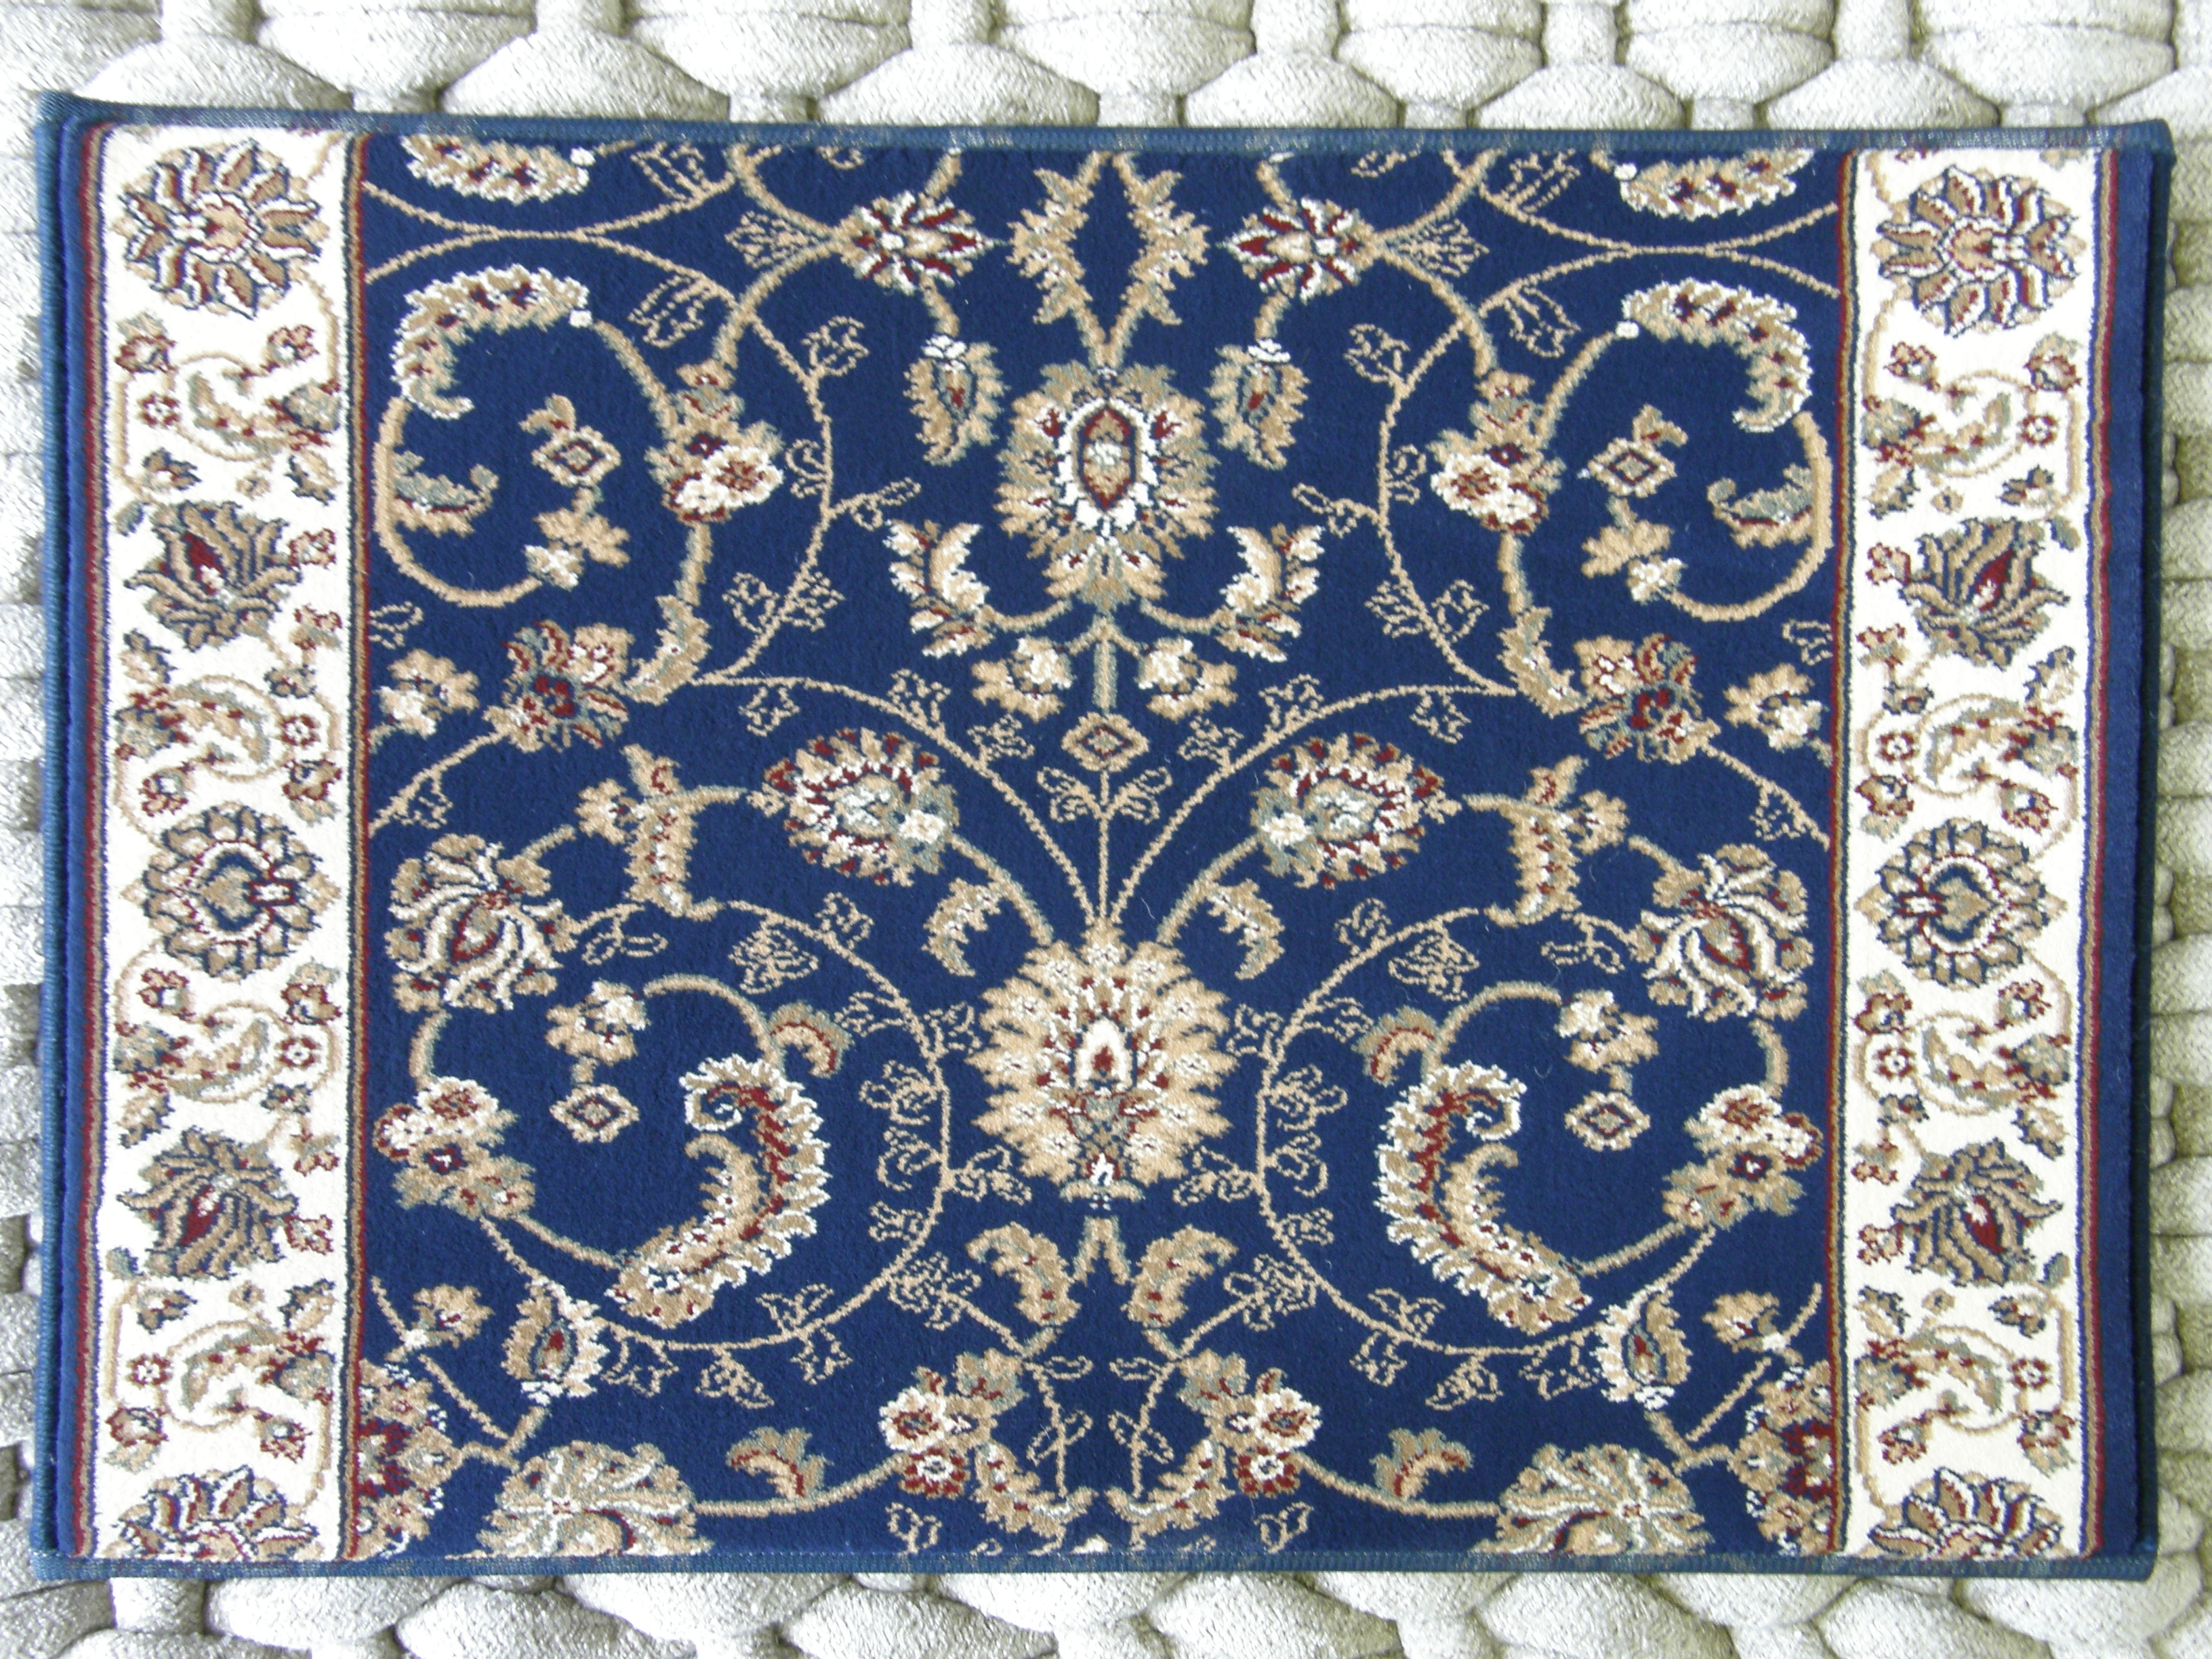 58 Best Rug In Blue Images On Pinterest Inside Blue Persian Rugs (View 11 of 15)